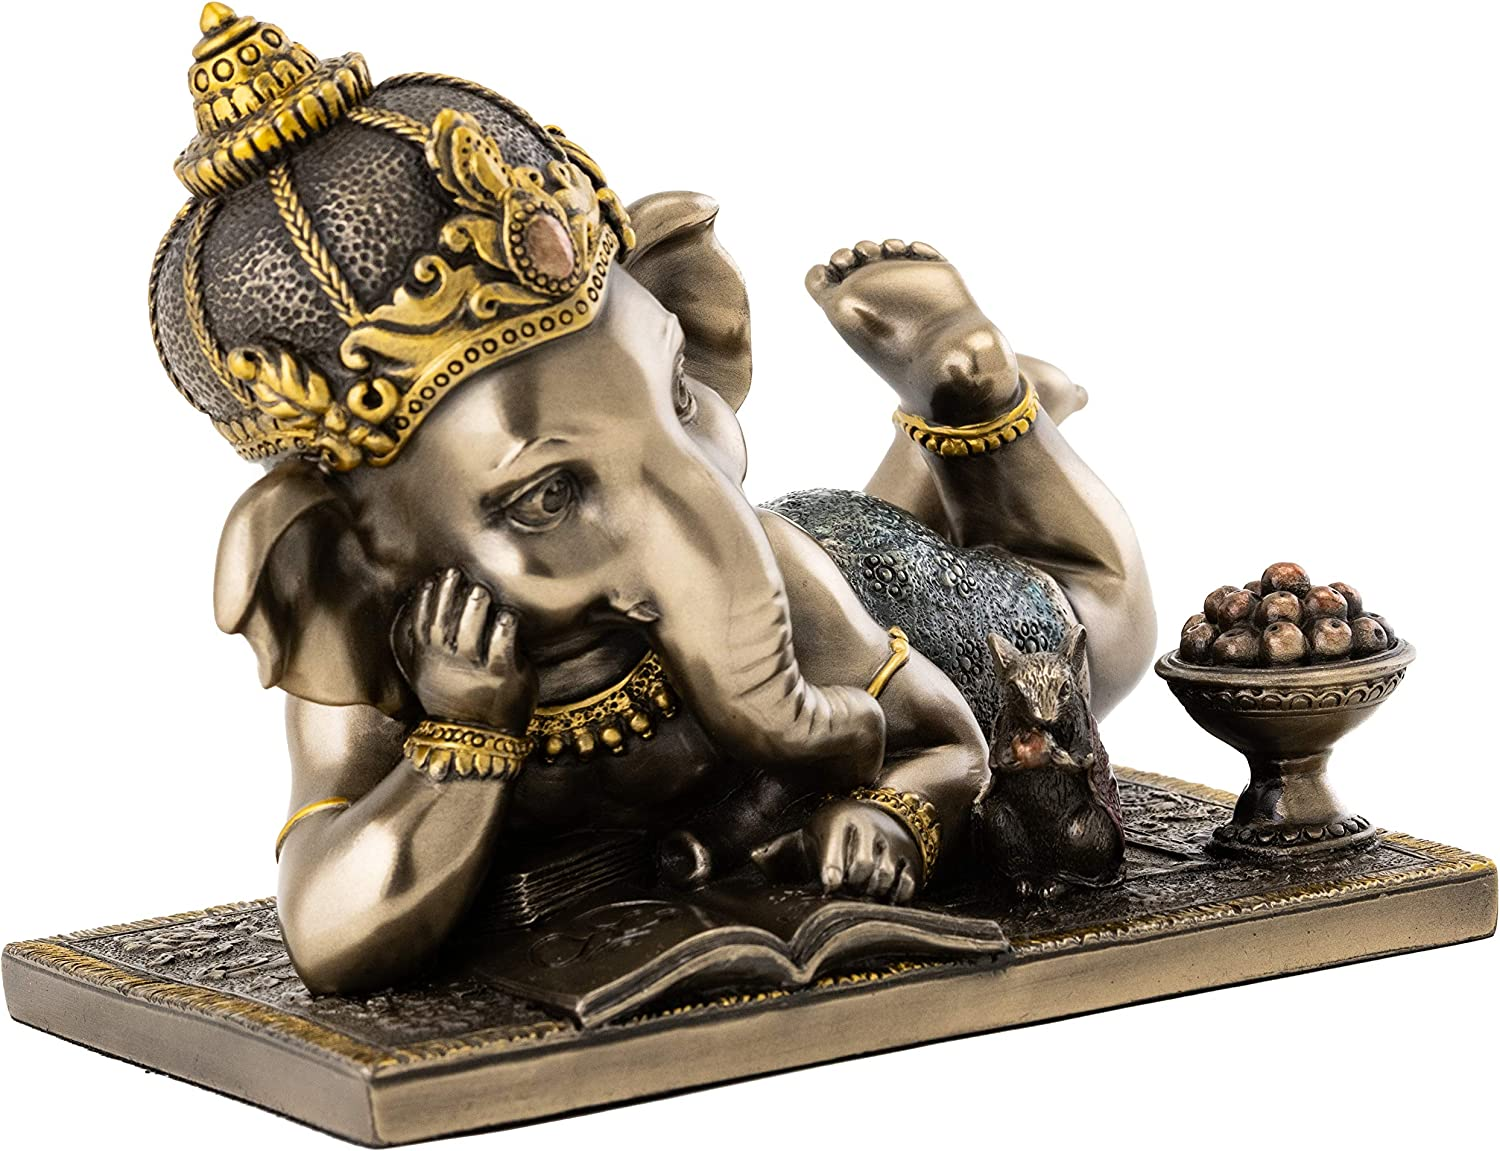 Top Collection Young Ganesh Statue Reading with Mouse - Hindu Elephant Lord of Success in Premium Cold Cast Bronze - 5-Inch Collectible Figurine